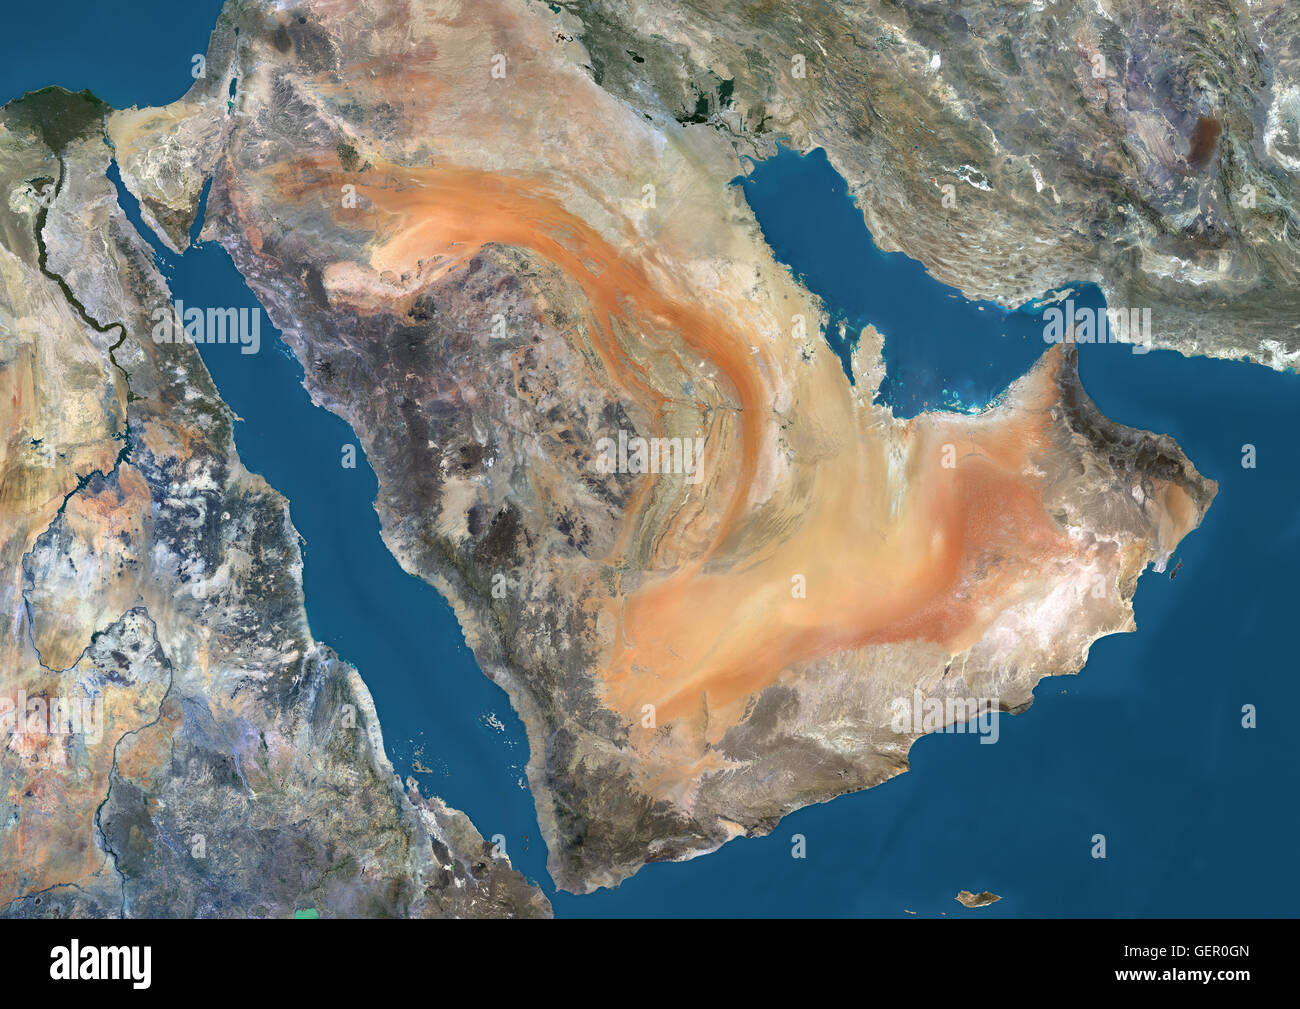 Satellite View Of The Arabian Peninsula This Image Was Compiled - World satellite map 2014